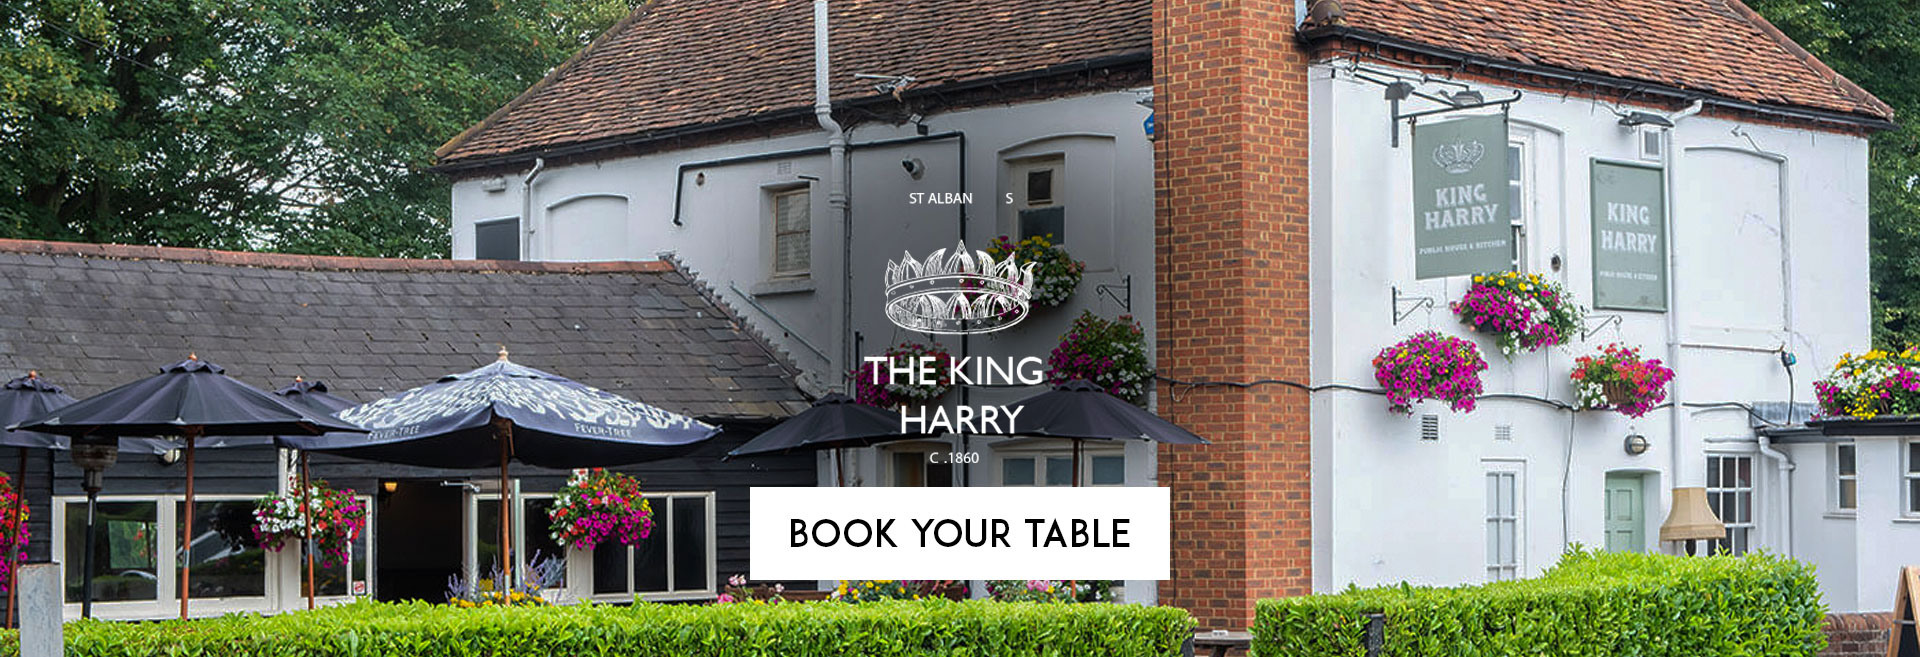 Book Your Table at The King Harry